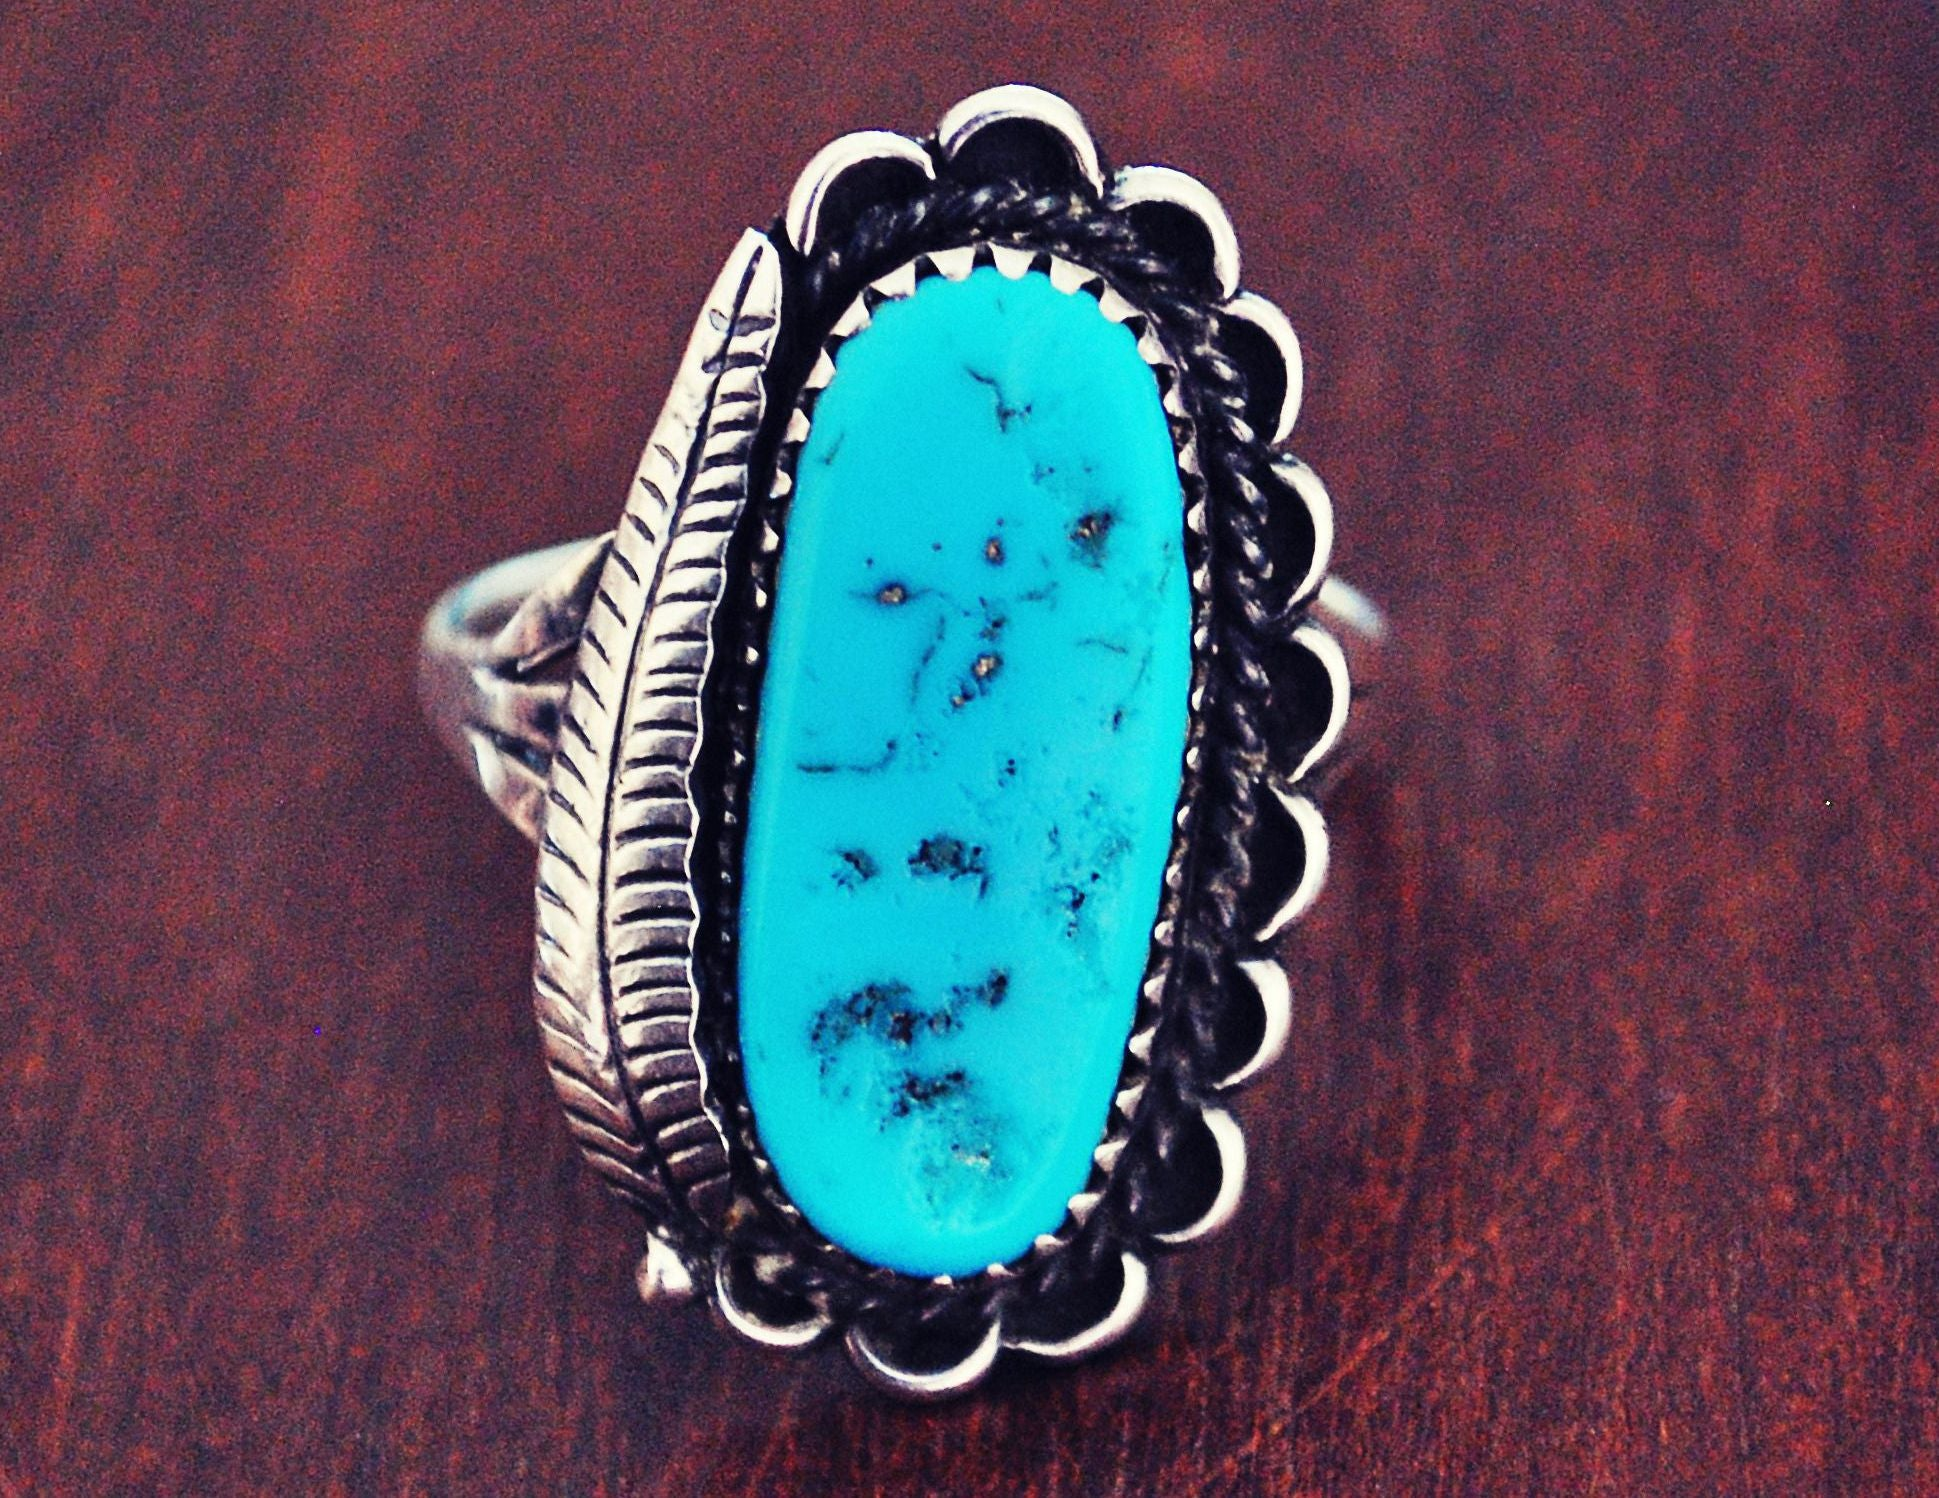 Native American Navajo Turquoise Ring - Size 9